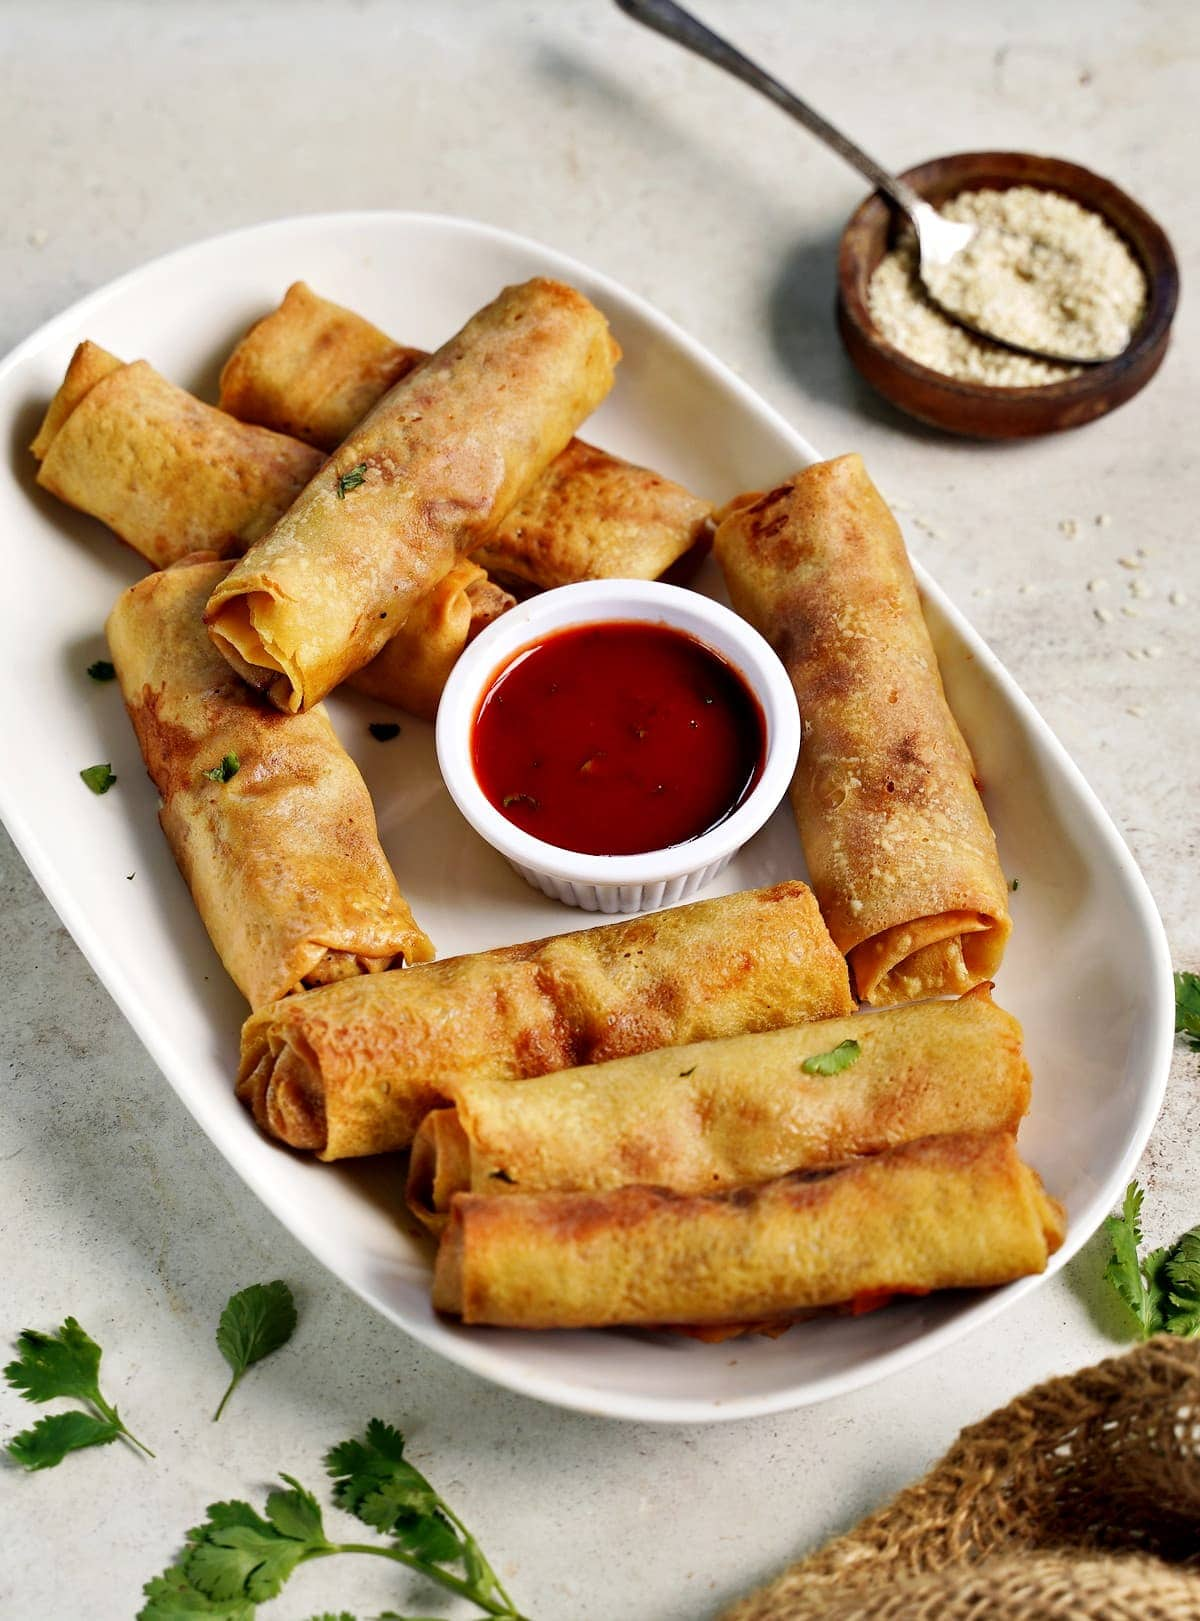 side view of pancake rolls with red sauce on white plate